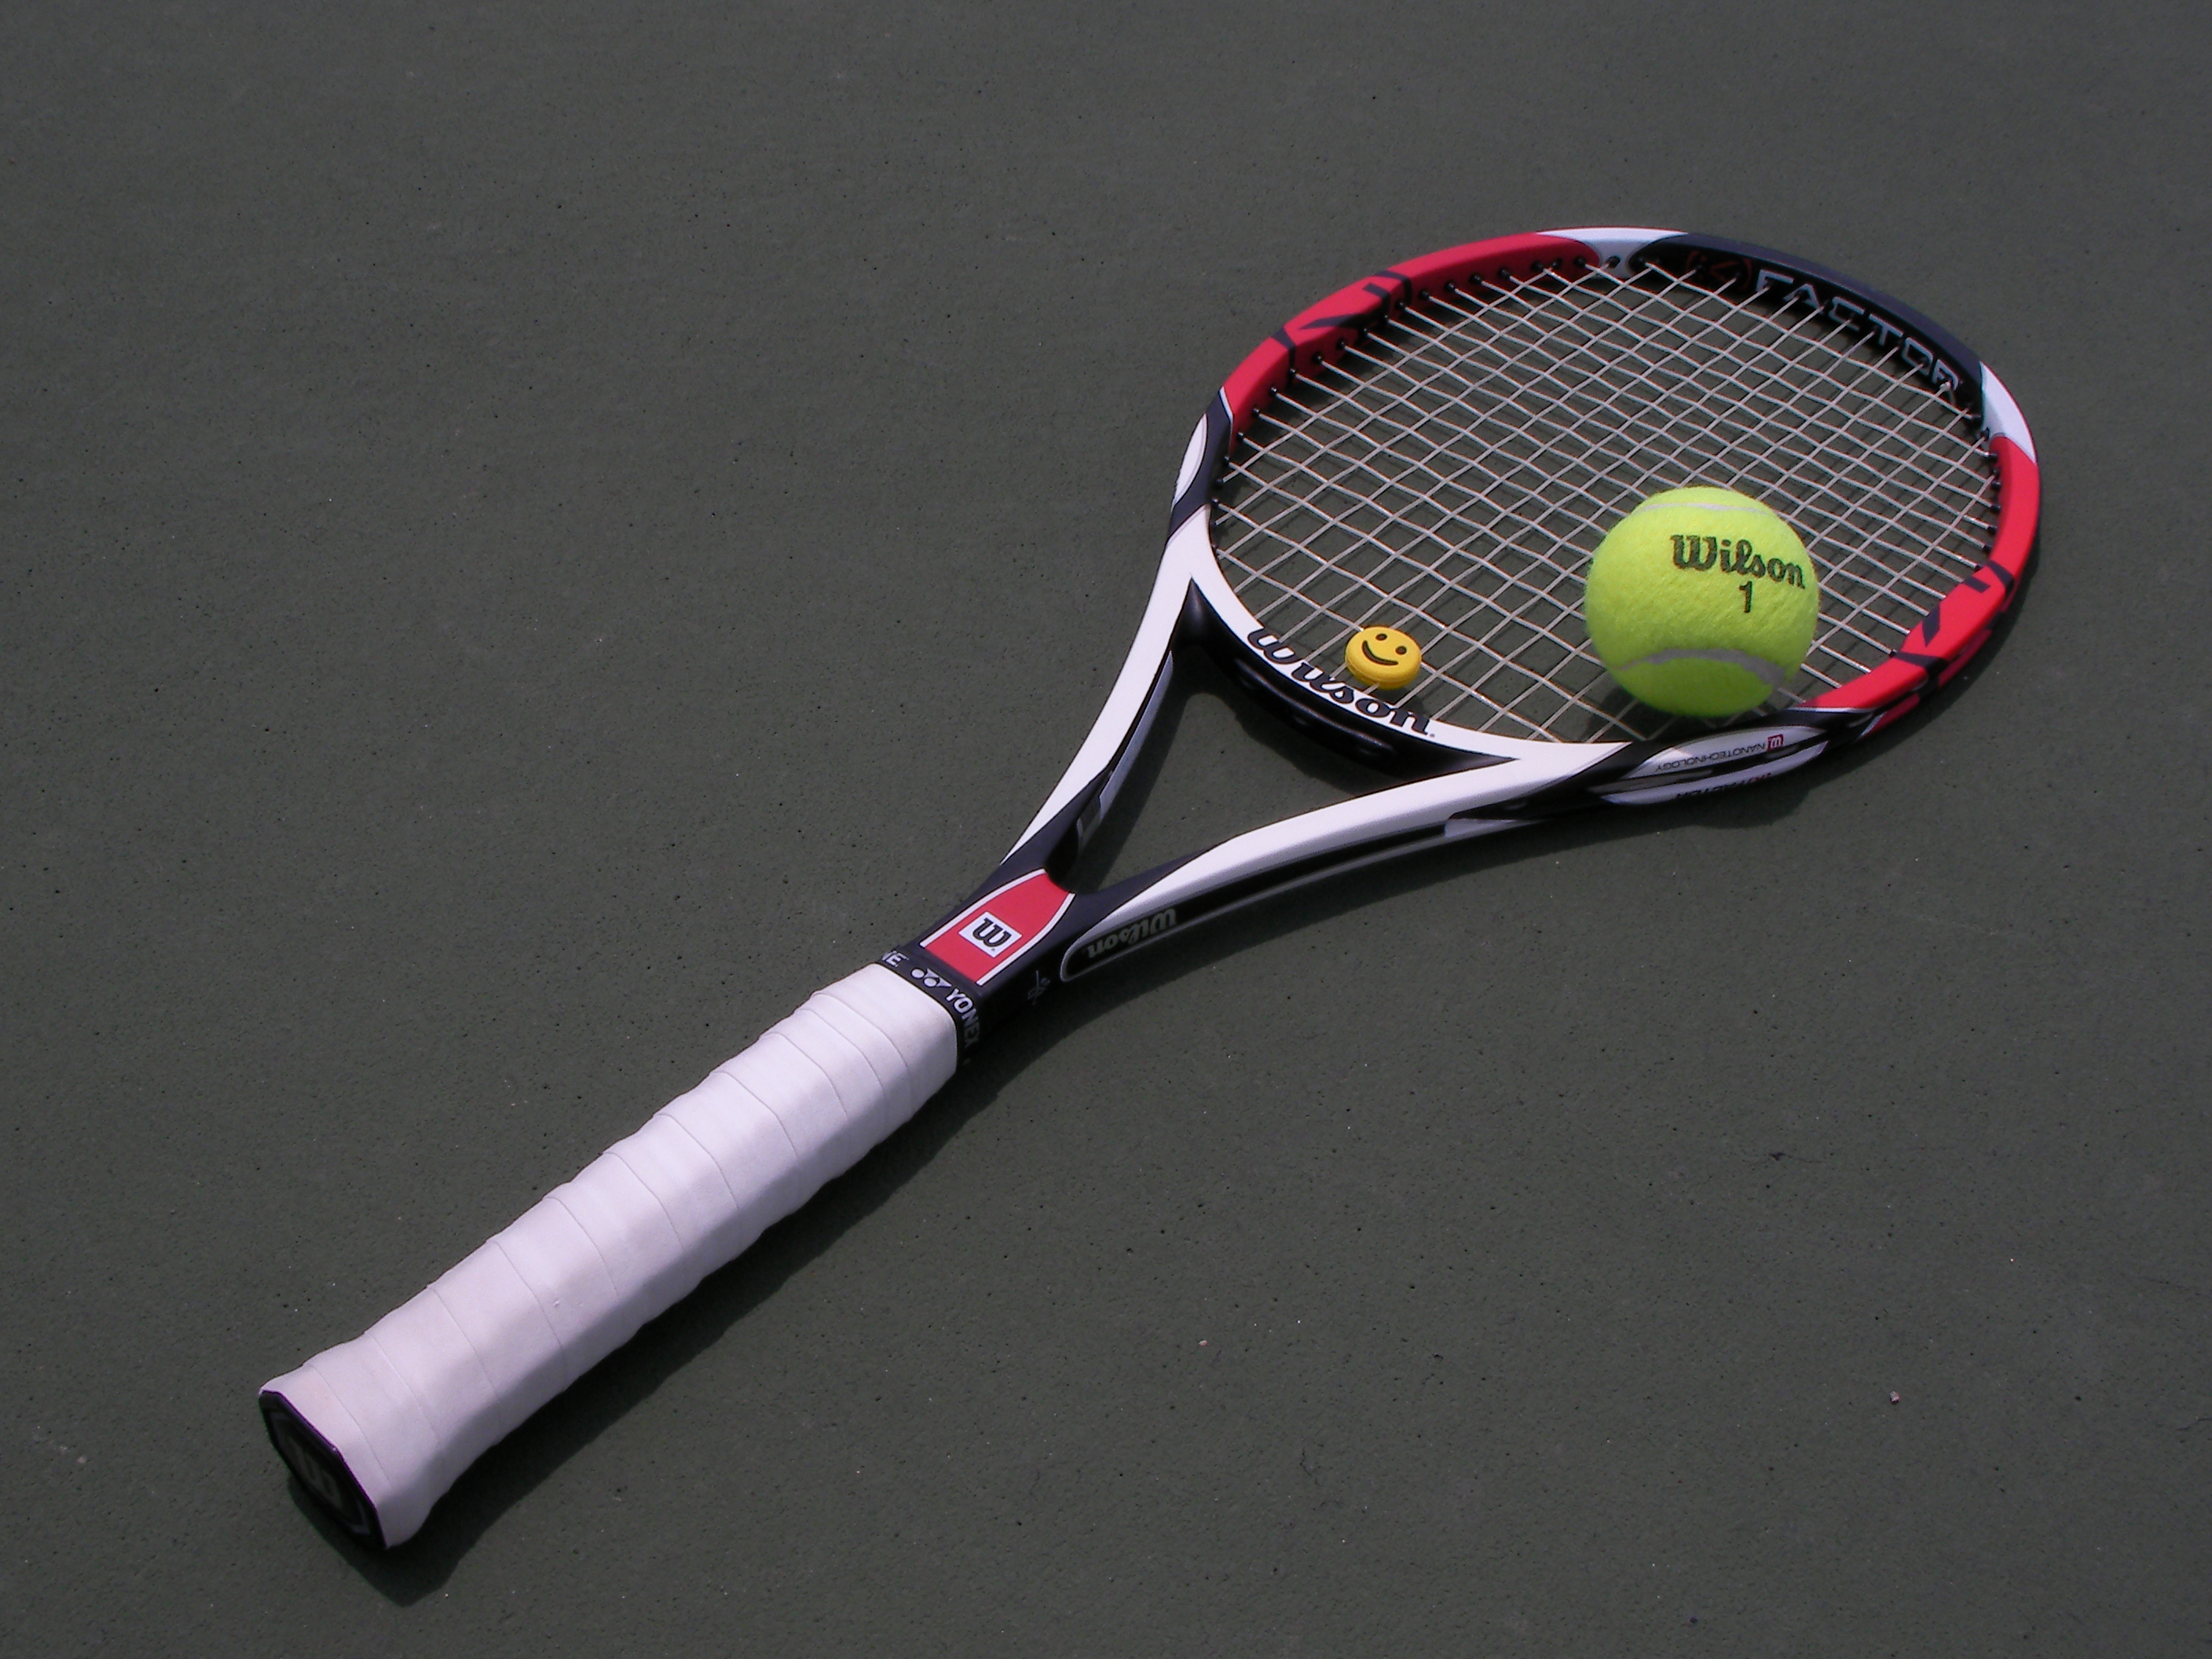 Pedaran Tennis racket and ball.JPG